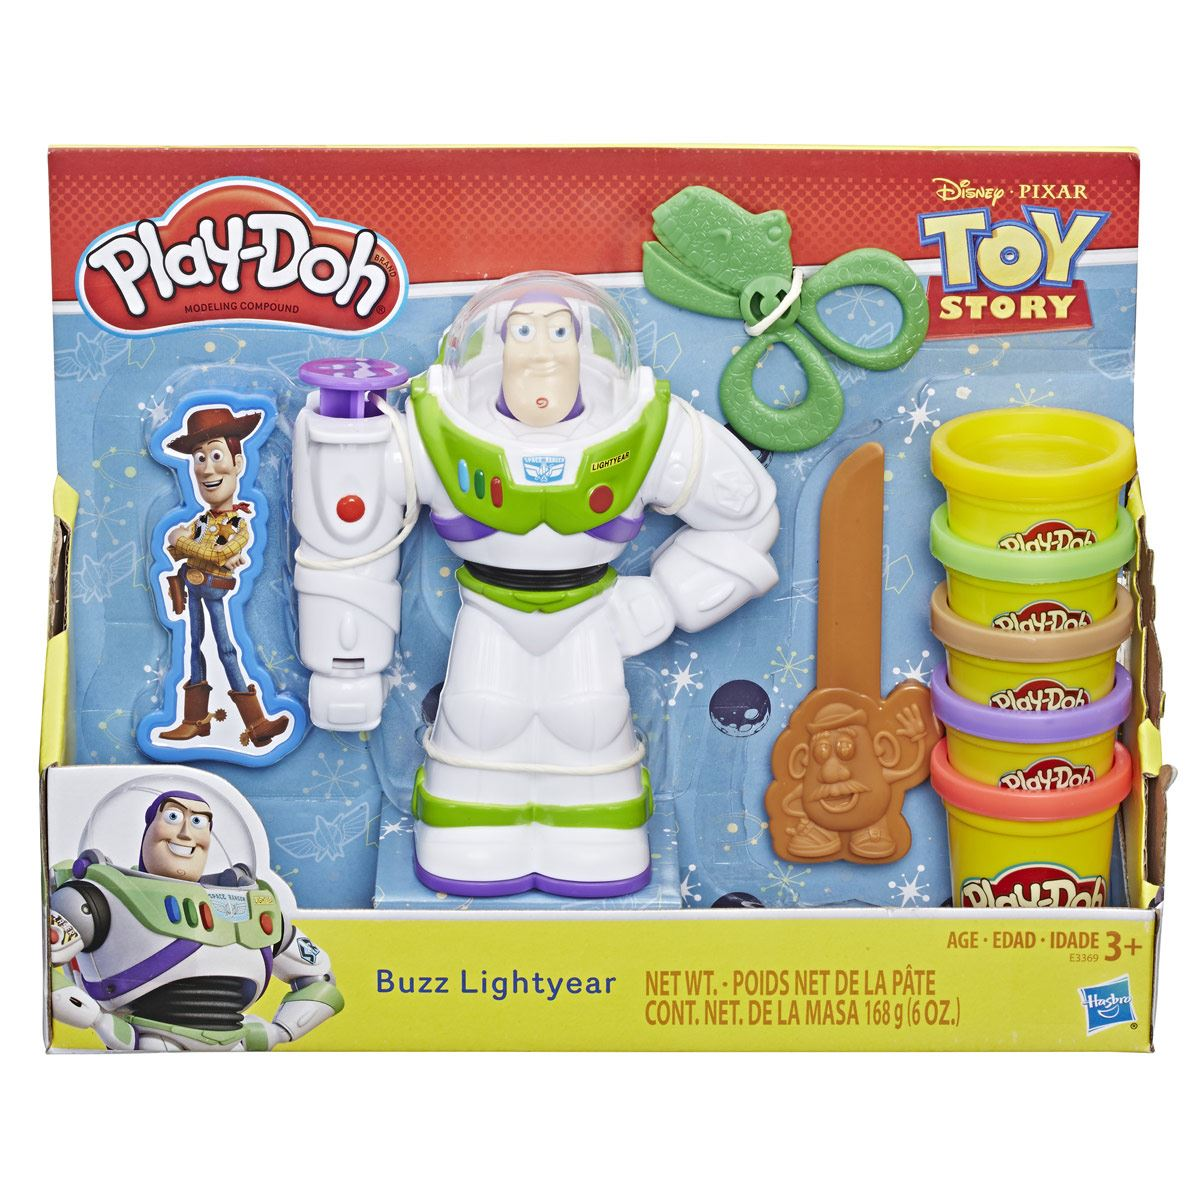 Set Toy Story Buzz Lightyear Play-Doh